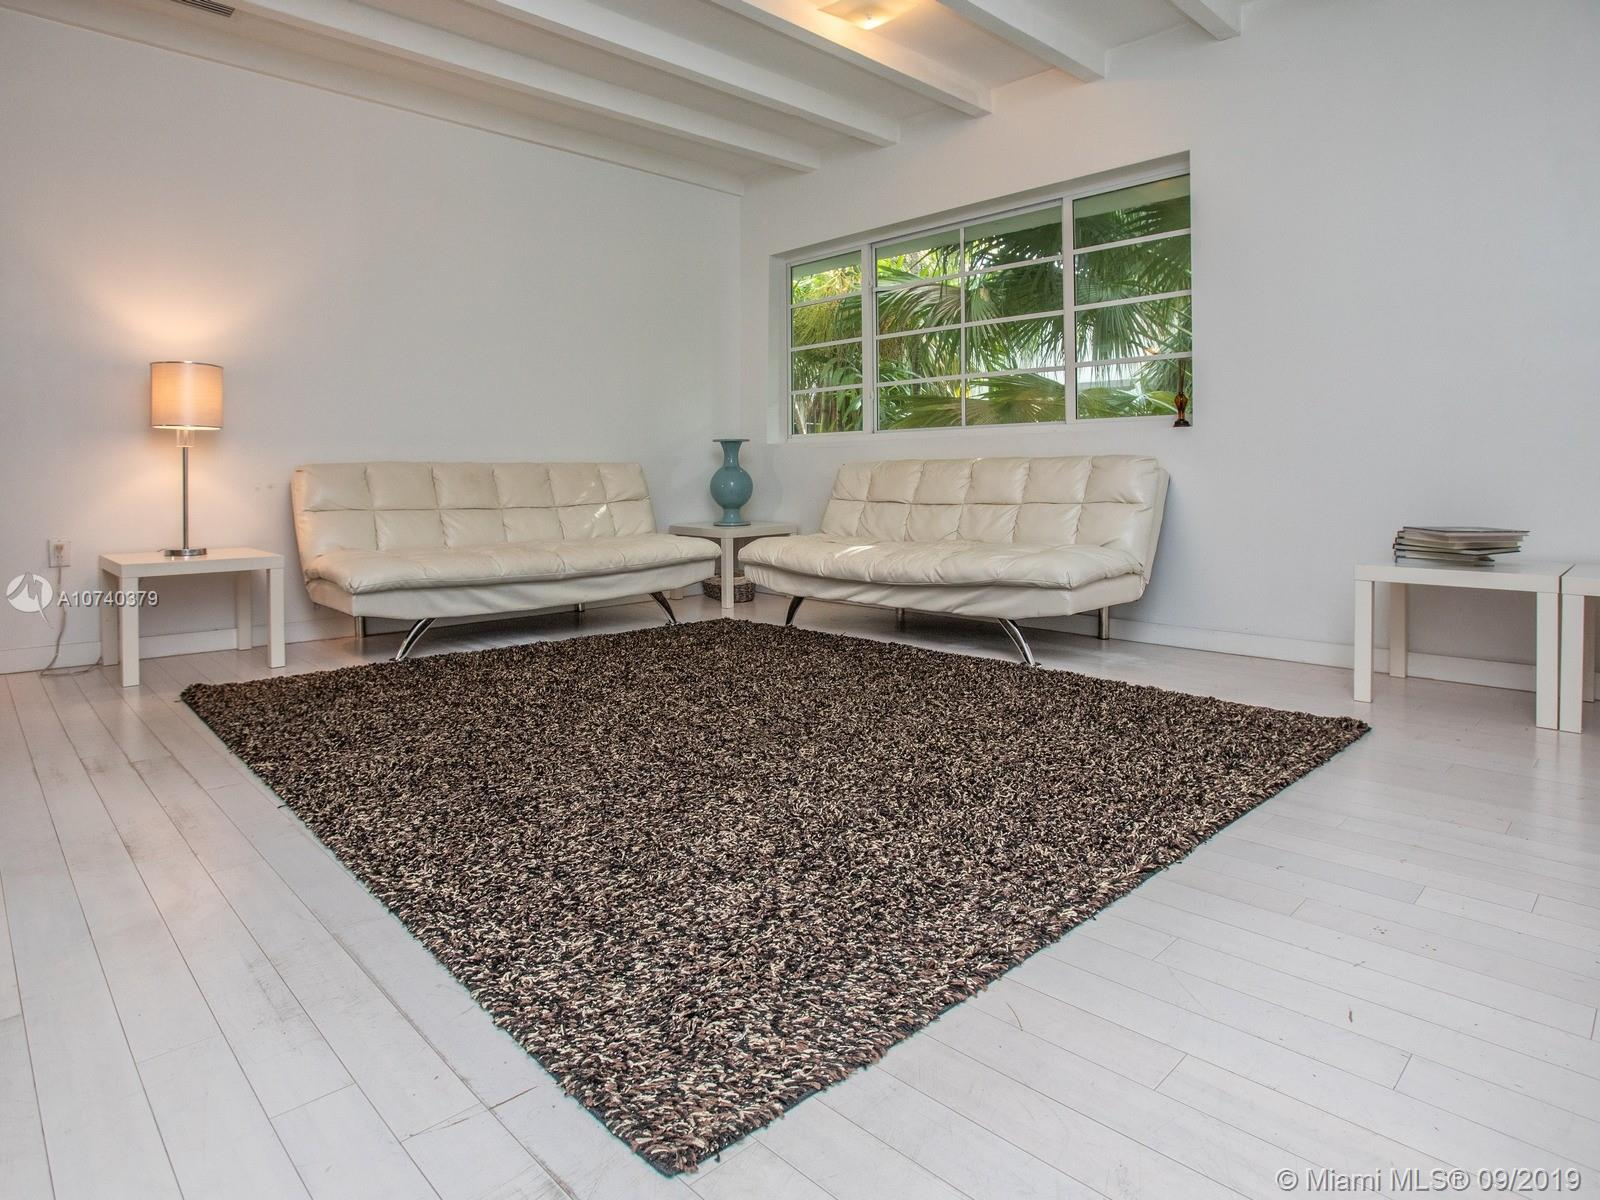 3917 N Meridian Ave #203 For Sale A10740379, FL